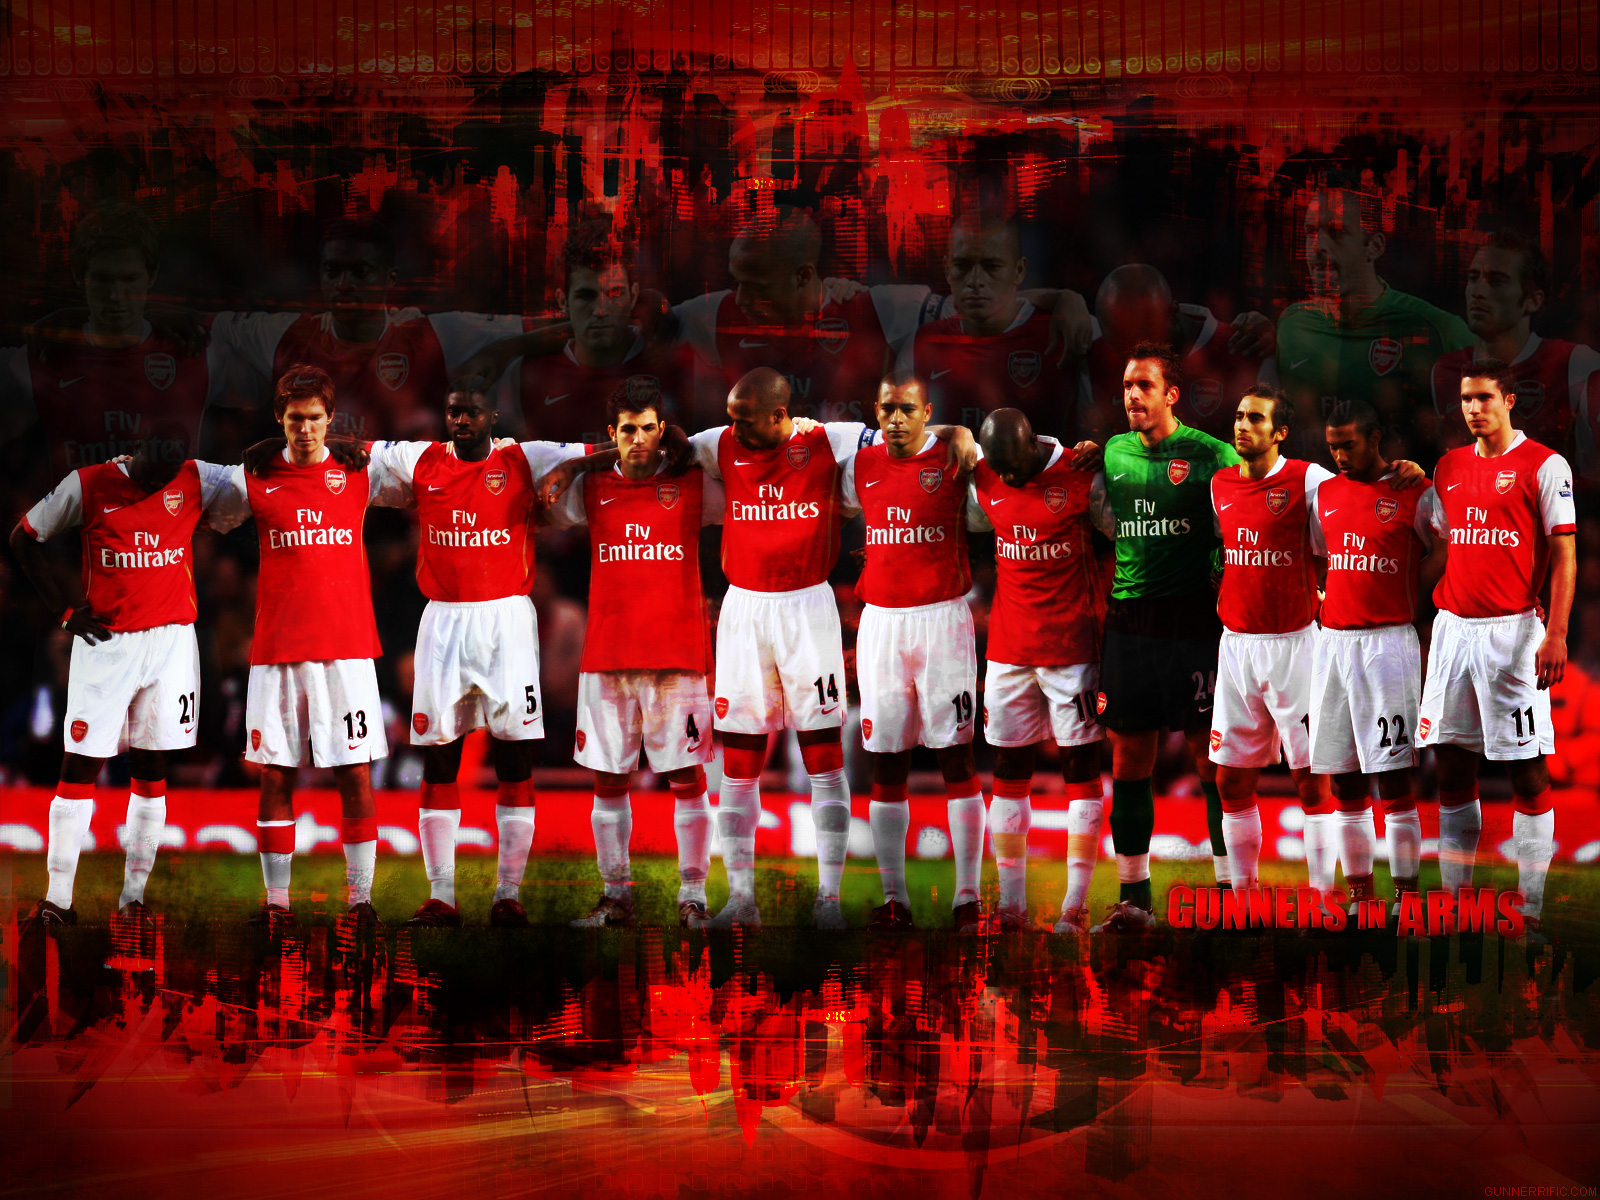 http://2.bp.blogspot.com/-ti_Re8dDSZM/T8oa6QVxJiI/AAAAAAAAEKI/XGzhTALT0ps/s1600/arsenal-wallpaper-30.jpg